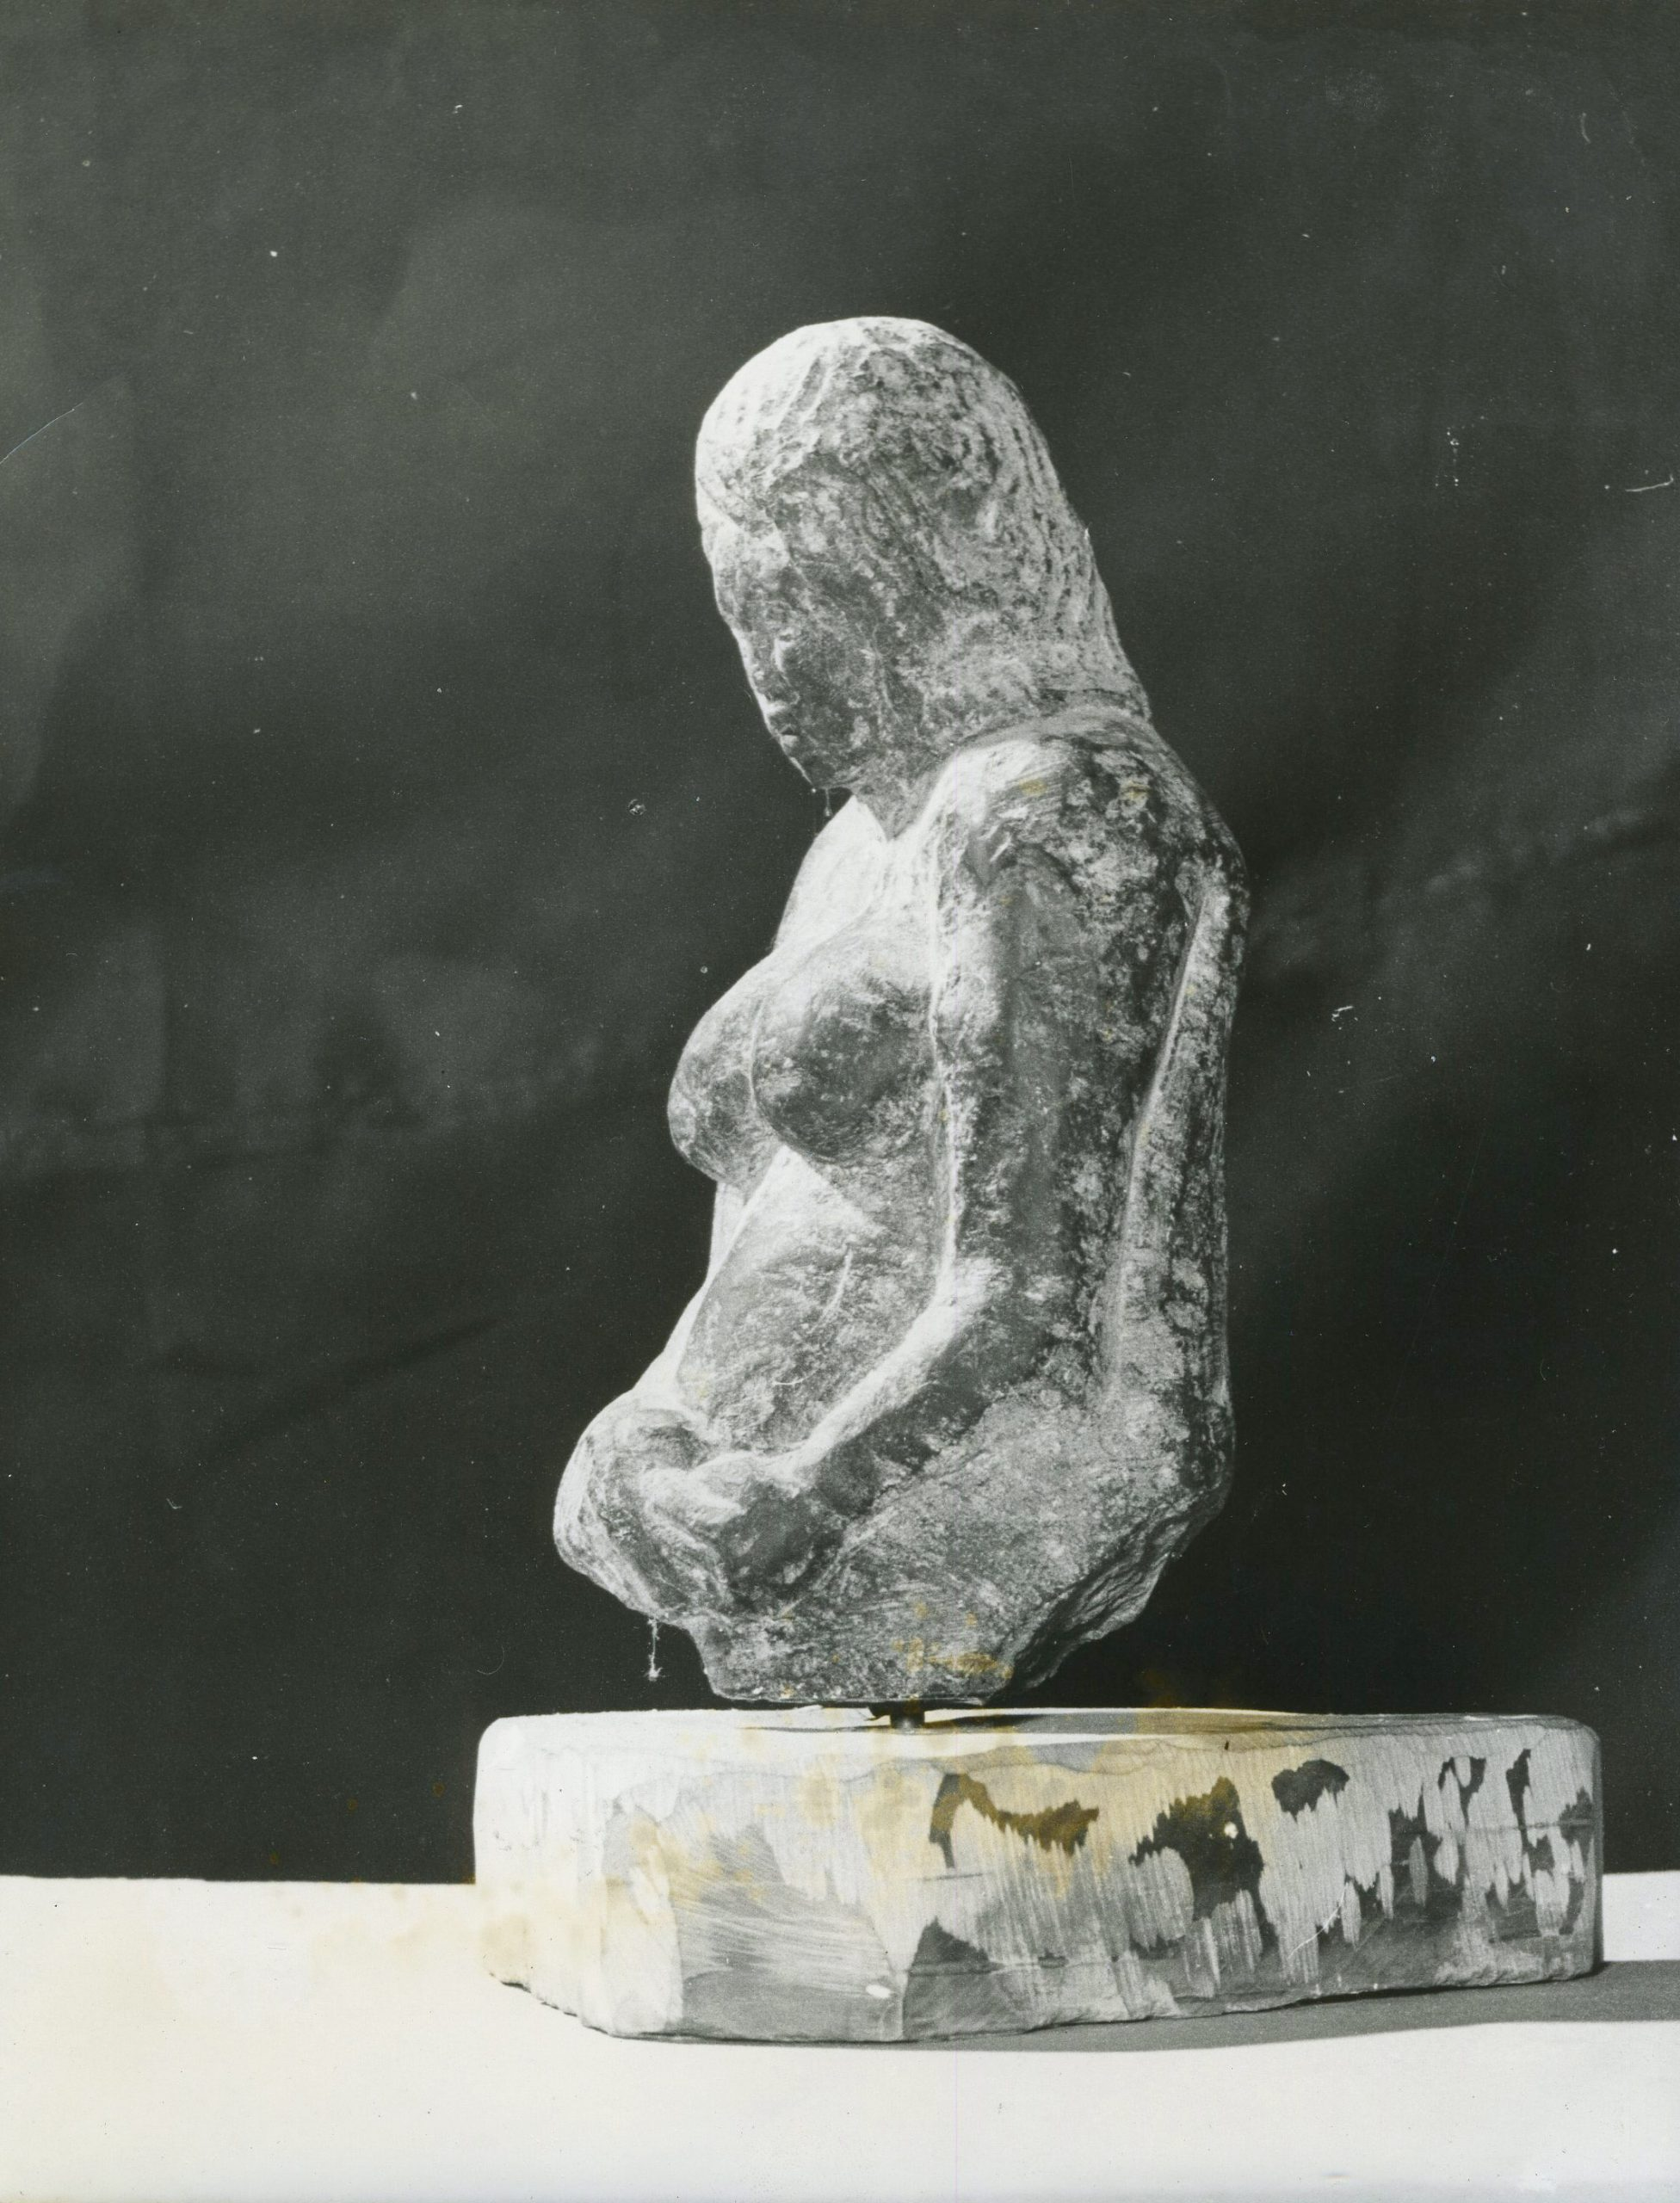 Sculpture of pregnant woman. Only upper part of body.